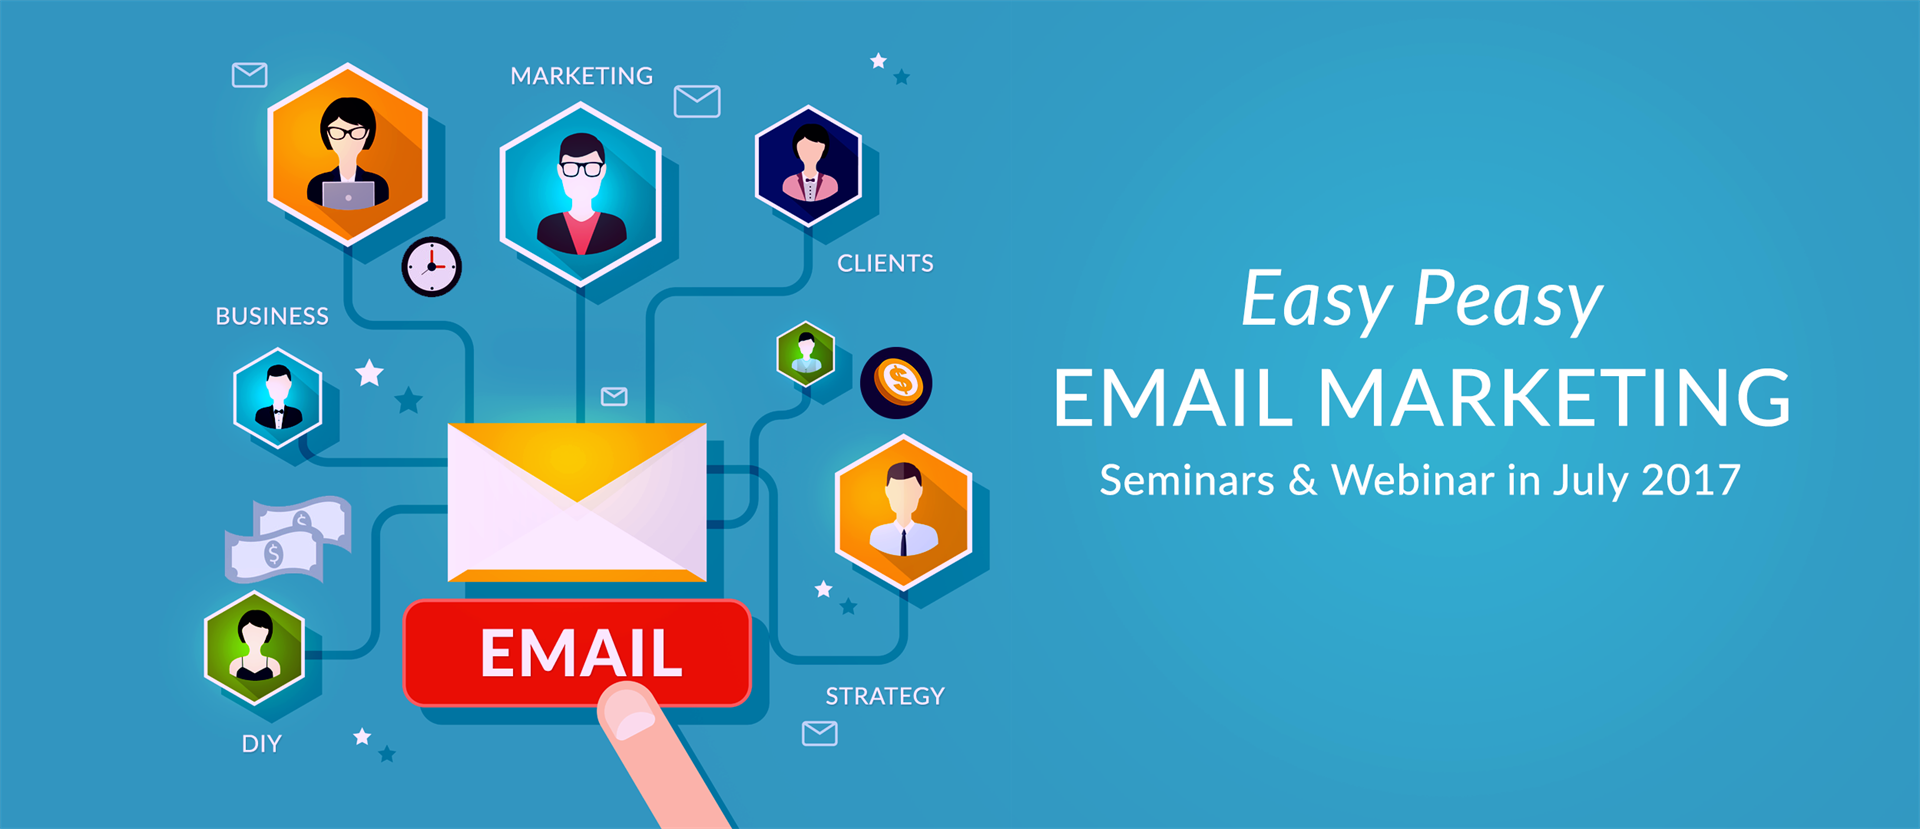 Easy Peasy Email Marketing Seminar [Portland]